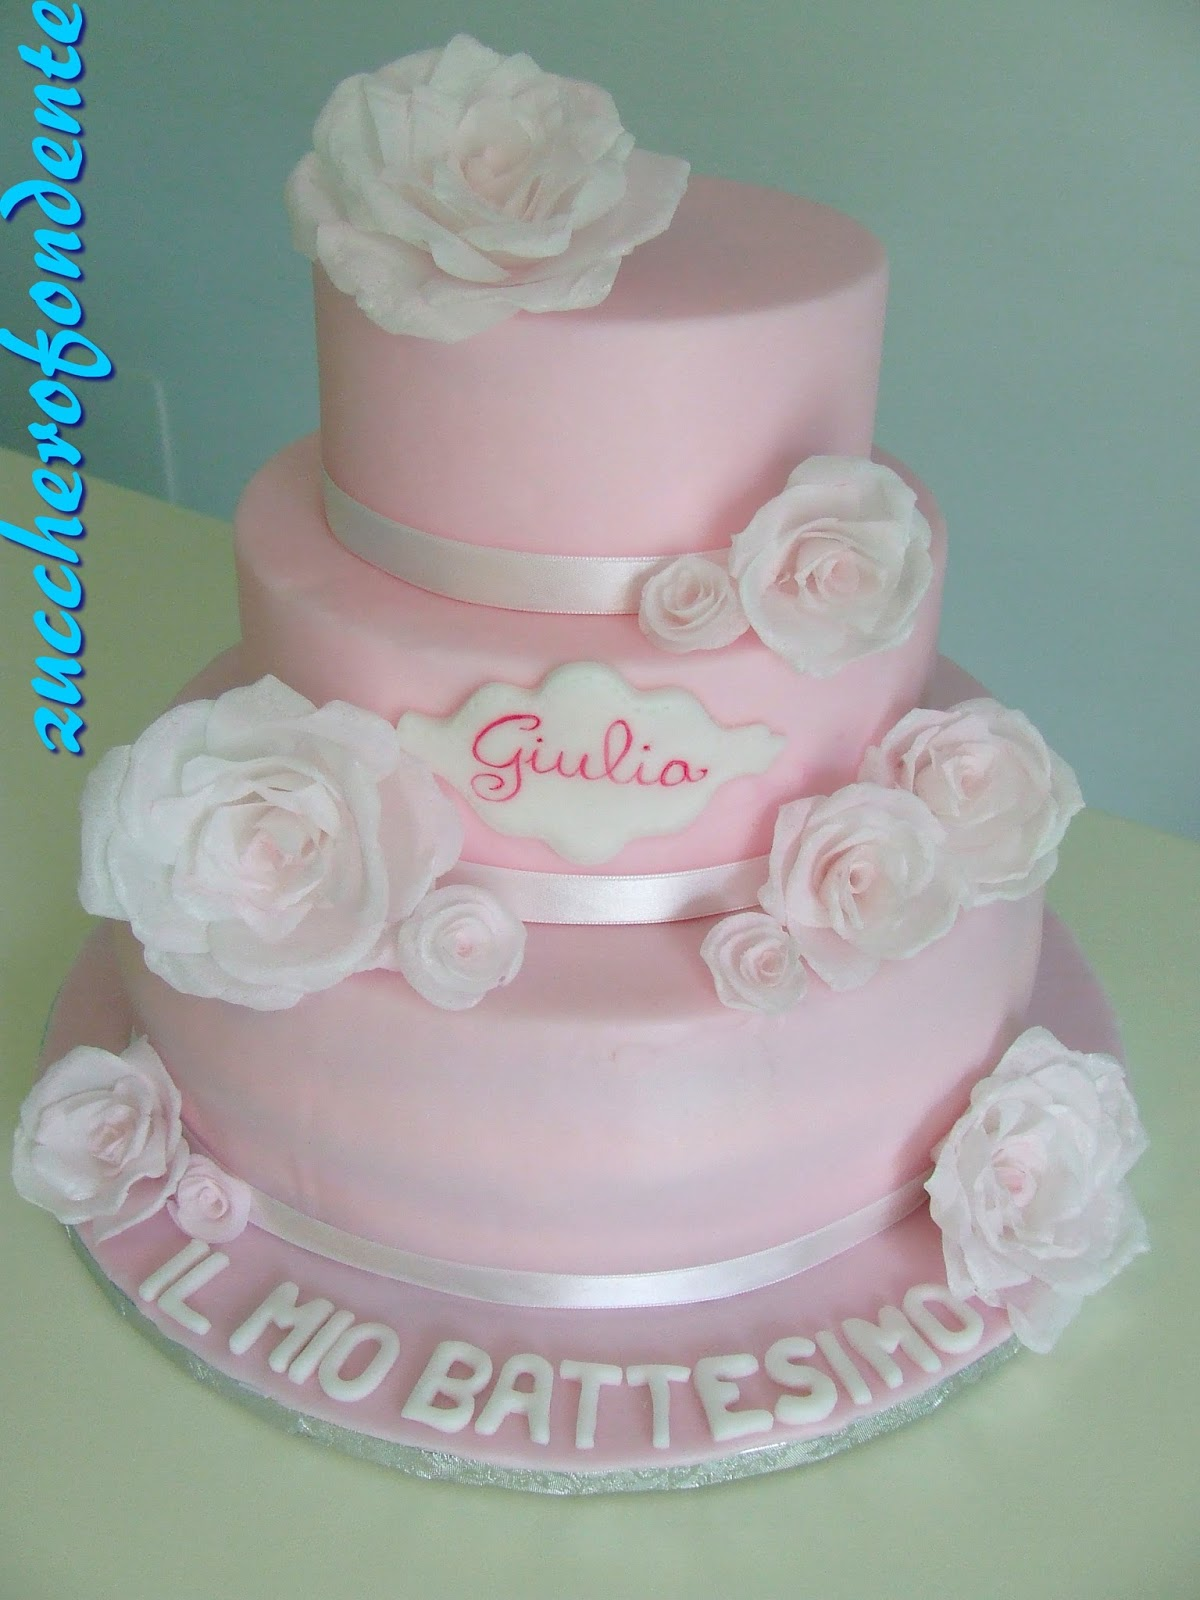 Popolare Torta Battesimo con rose in wafer paper TT58